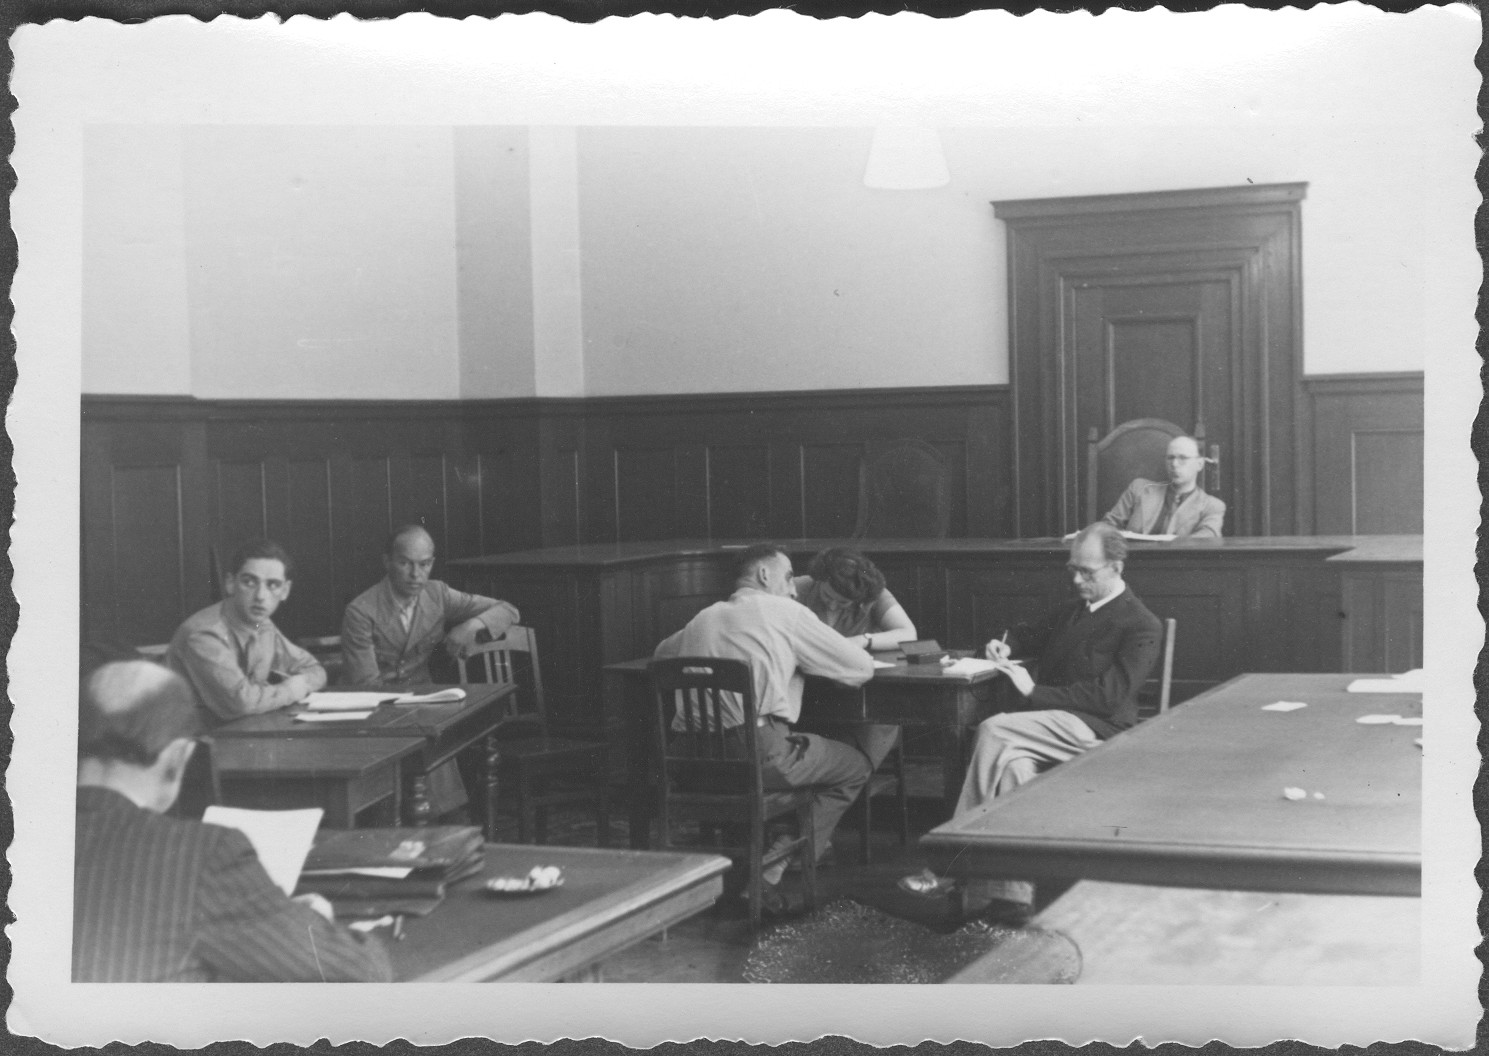 Interrogation of German General Roettiger, former chief of staff of the German 4th Army and later of Army Group Center, by defense counsel Dr. Hans Laternser (foreground) at the IMT Nuremberg commission hearings investigating indicted Nazi organizations.   Russian Commissioner I. Rasumov presides over the hearing.